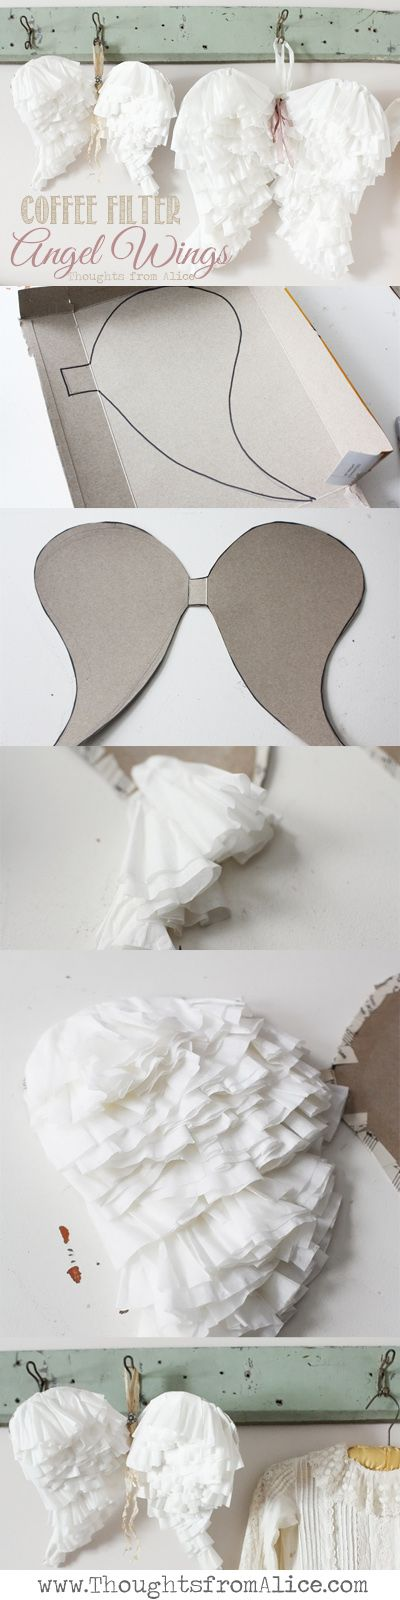 DIY Coffee Filter Angel Wings for Angel